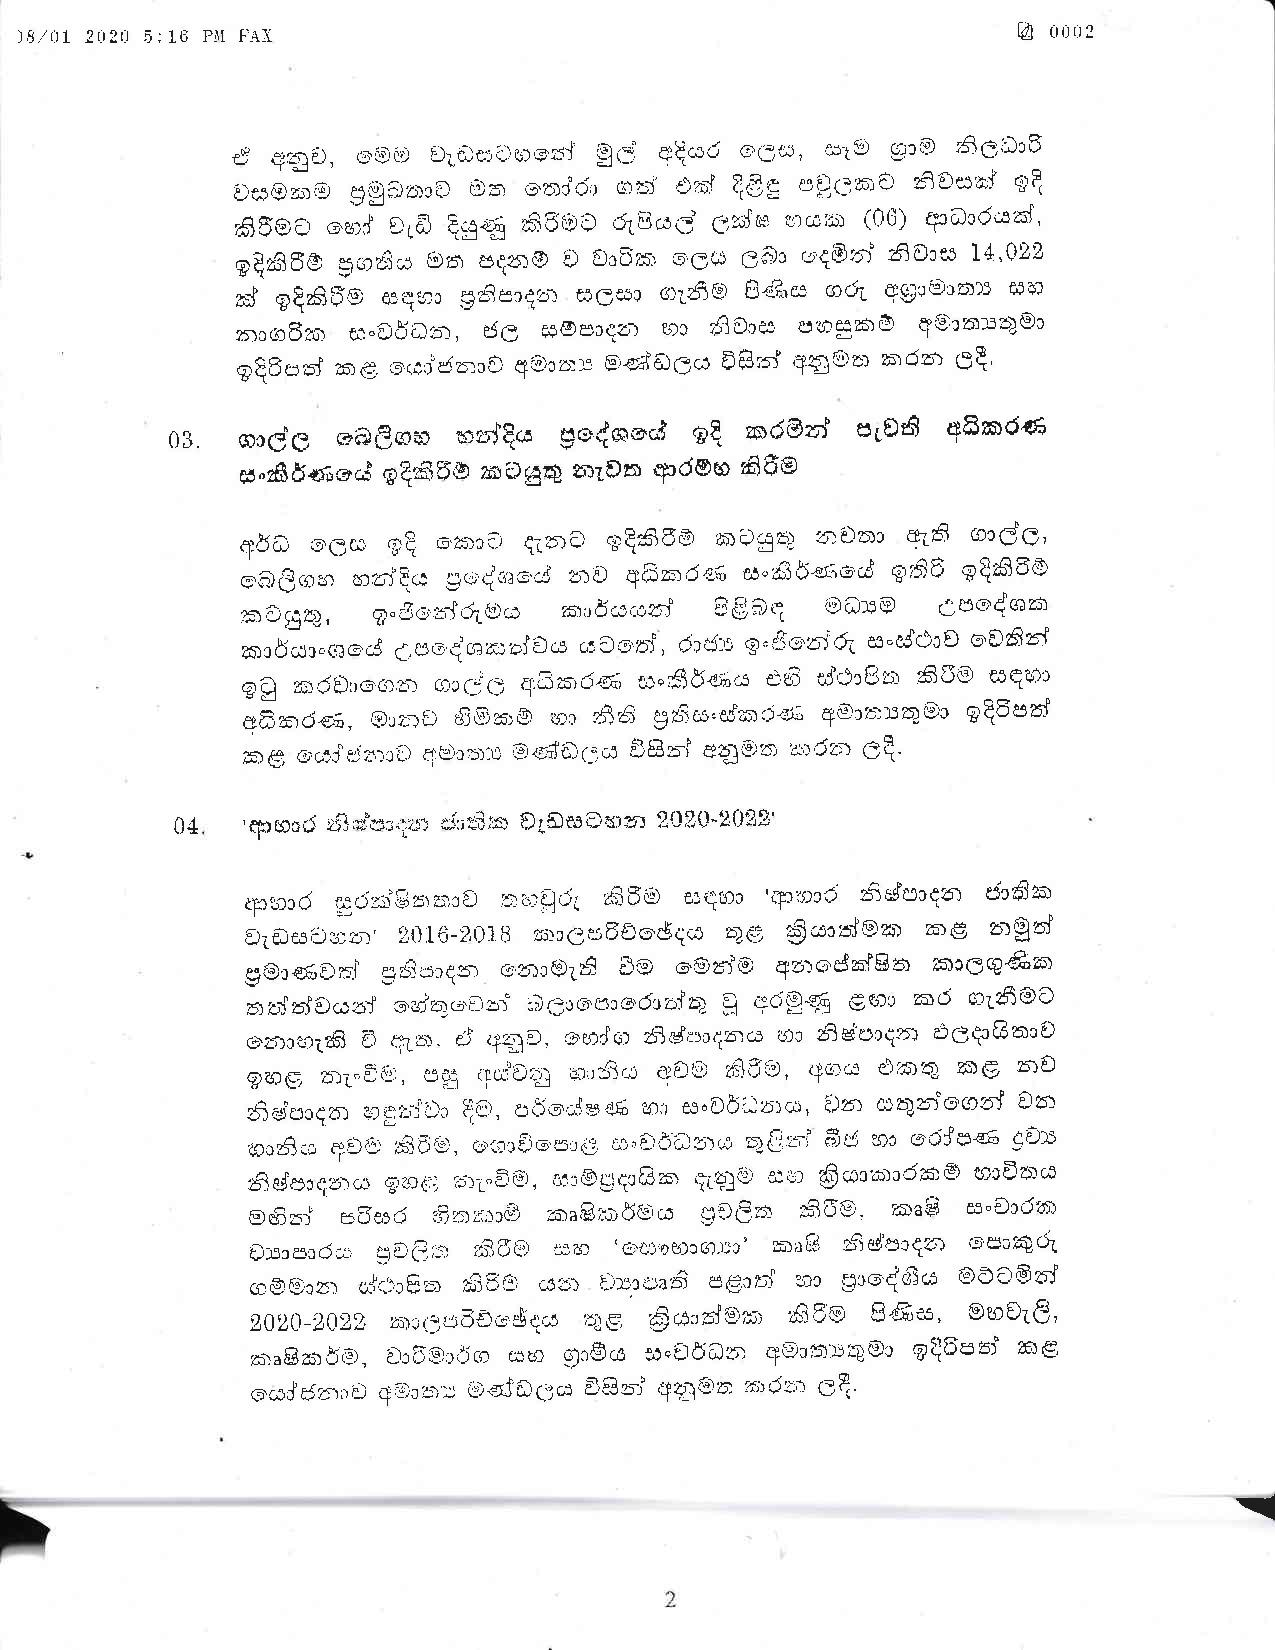 Cabinet Decision on 08.01.2020 page 002